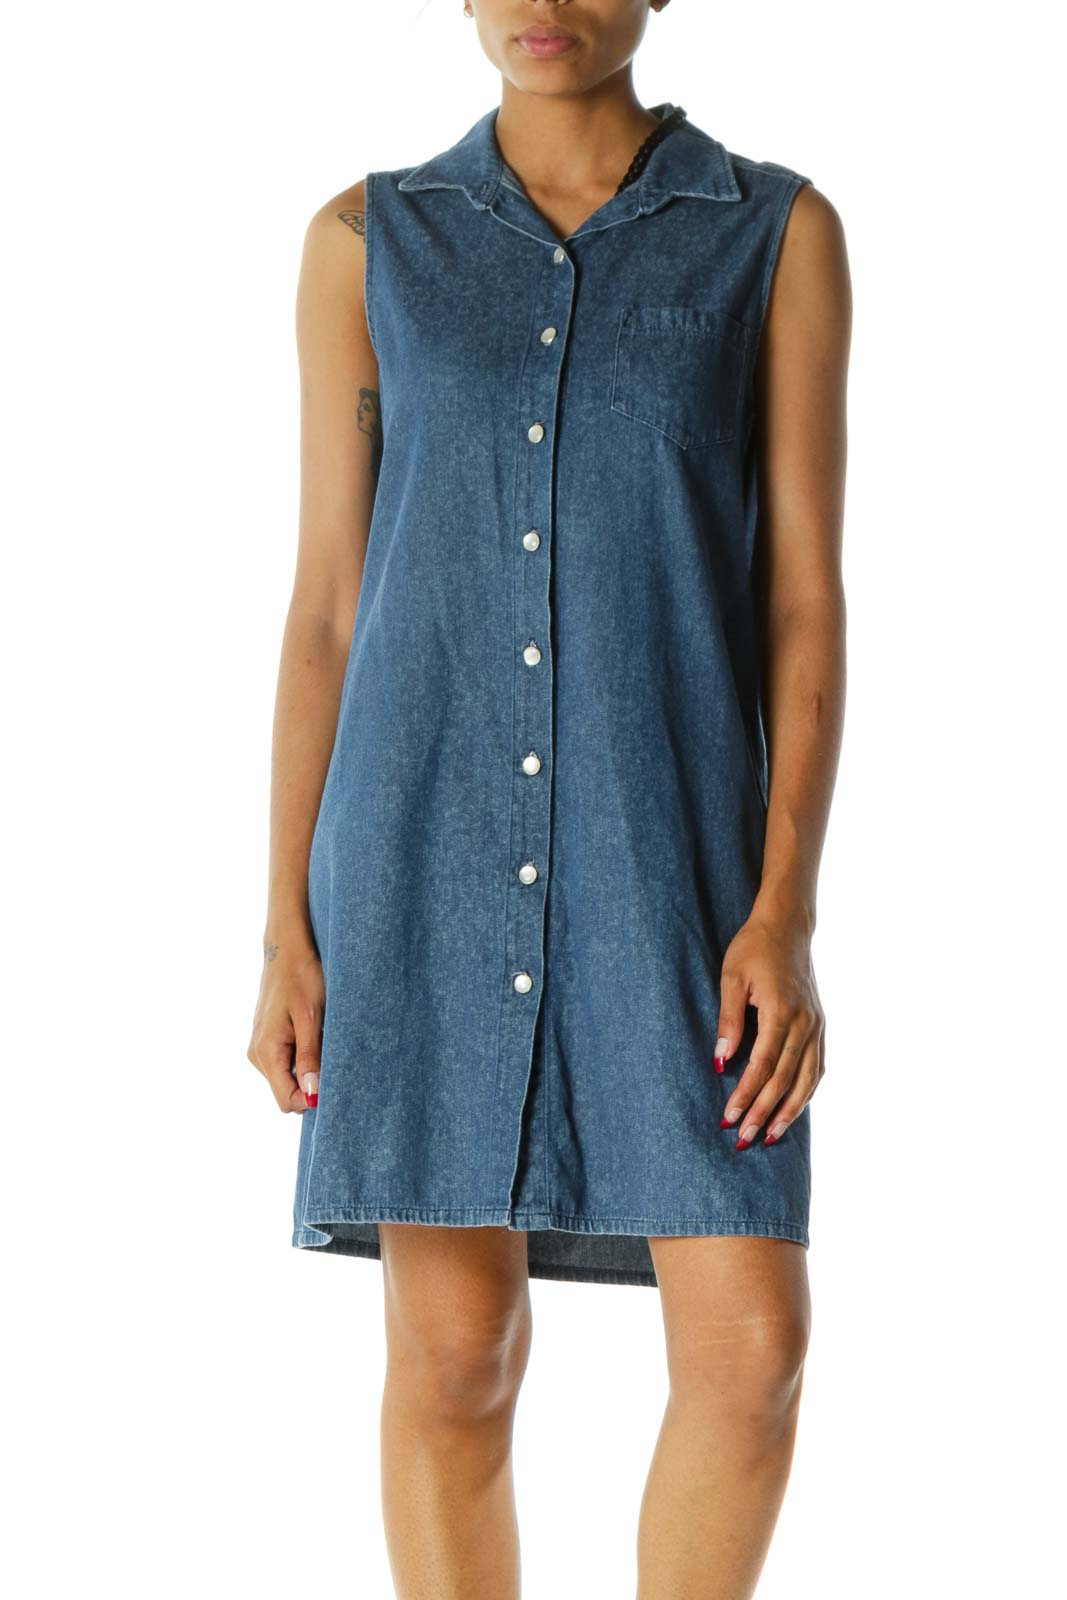 Blue Collared Buttoned One-Pocket Sleeveless Denim Dress Front